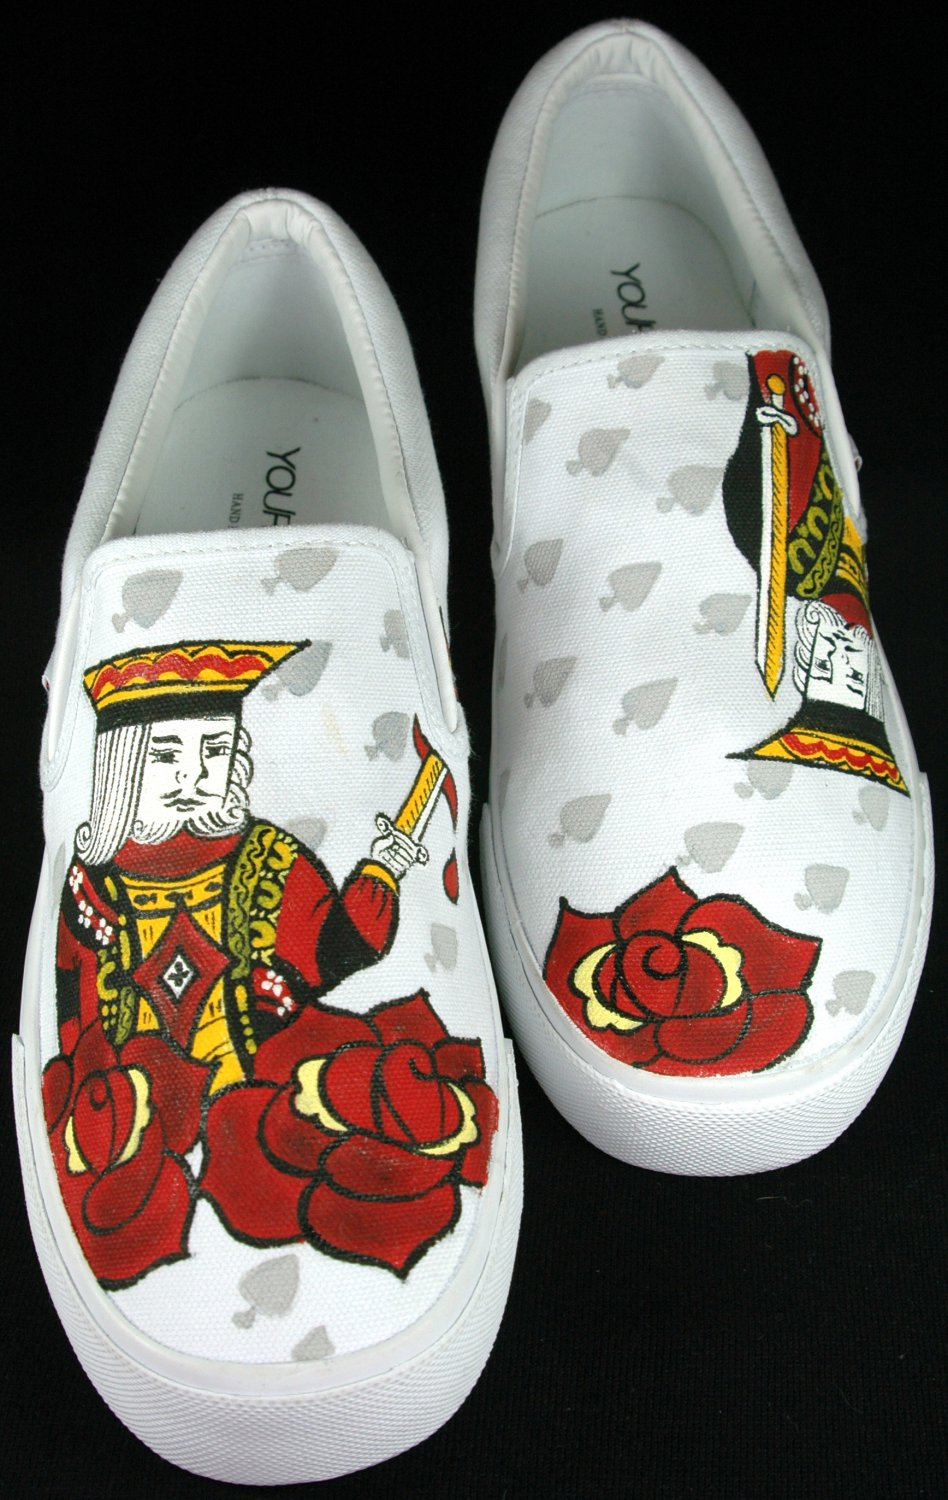 """Hand Painted Shoes : Custom Vans Slip-ons Sneakers For Men - """"The Victorious King"""""""